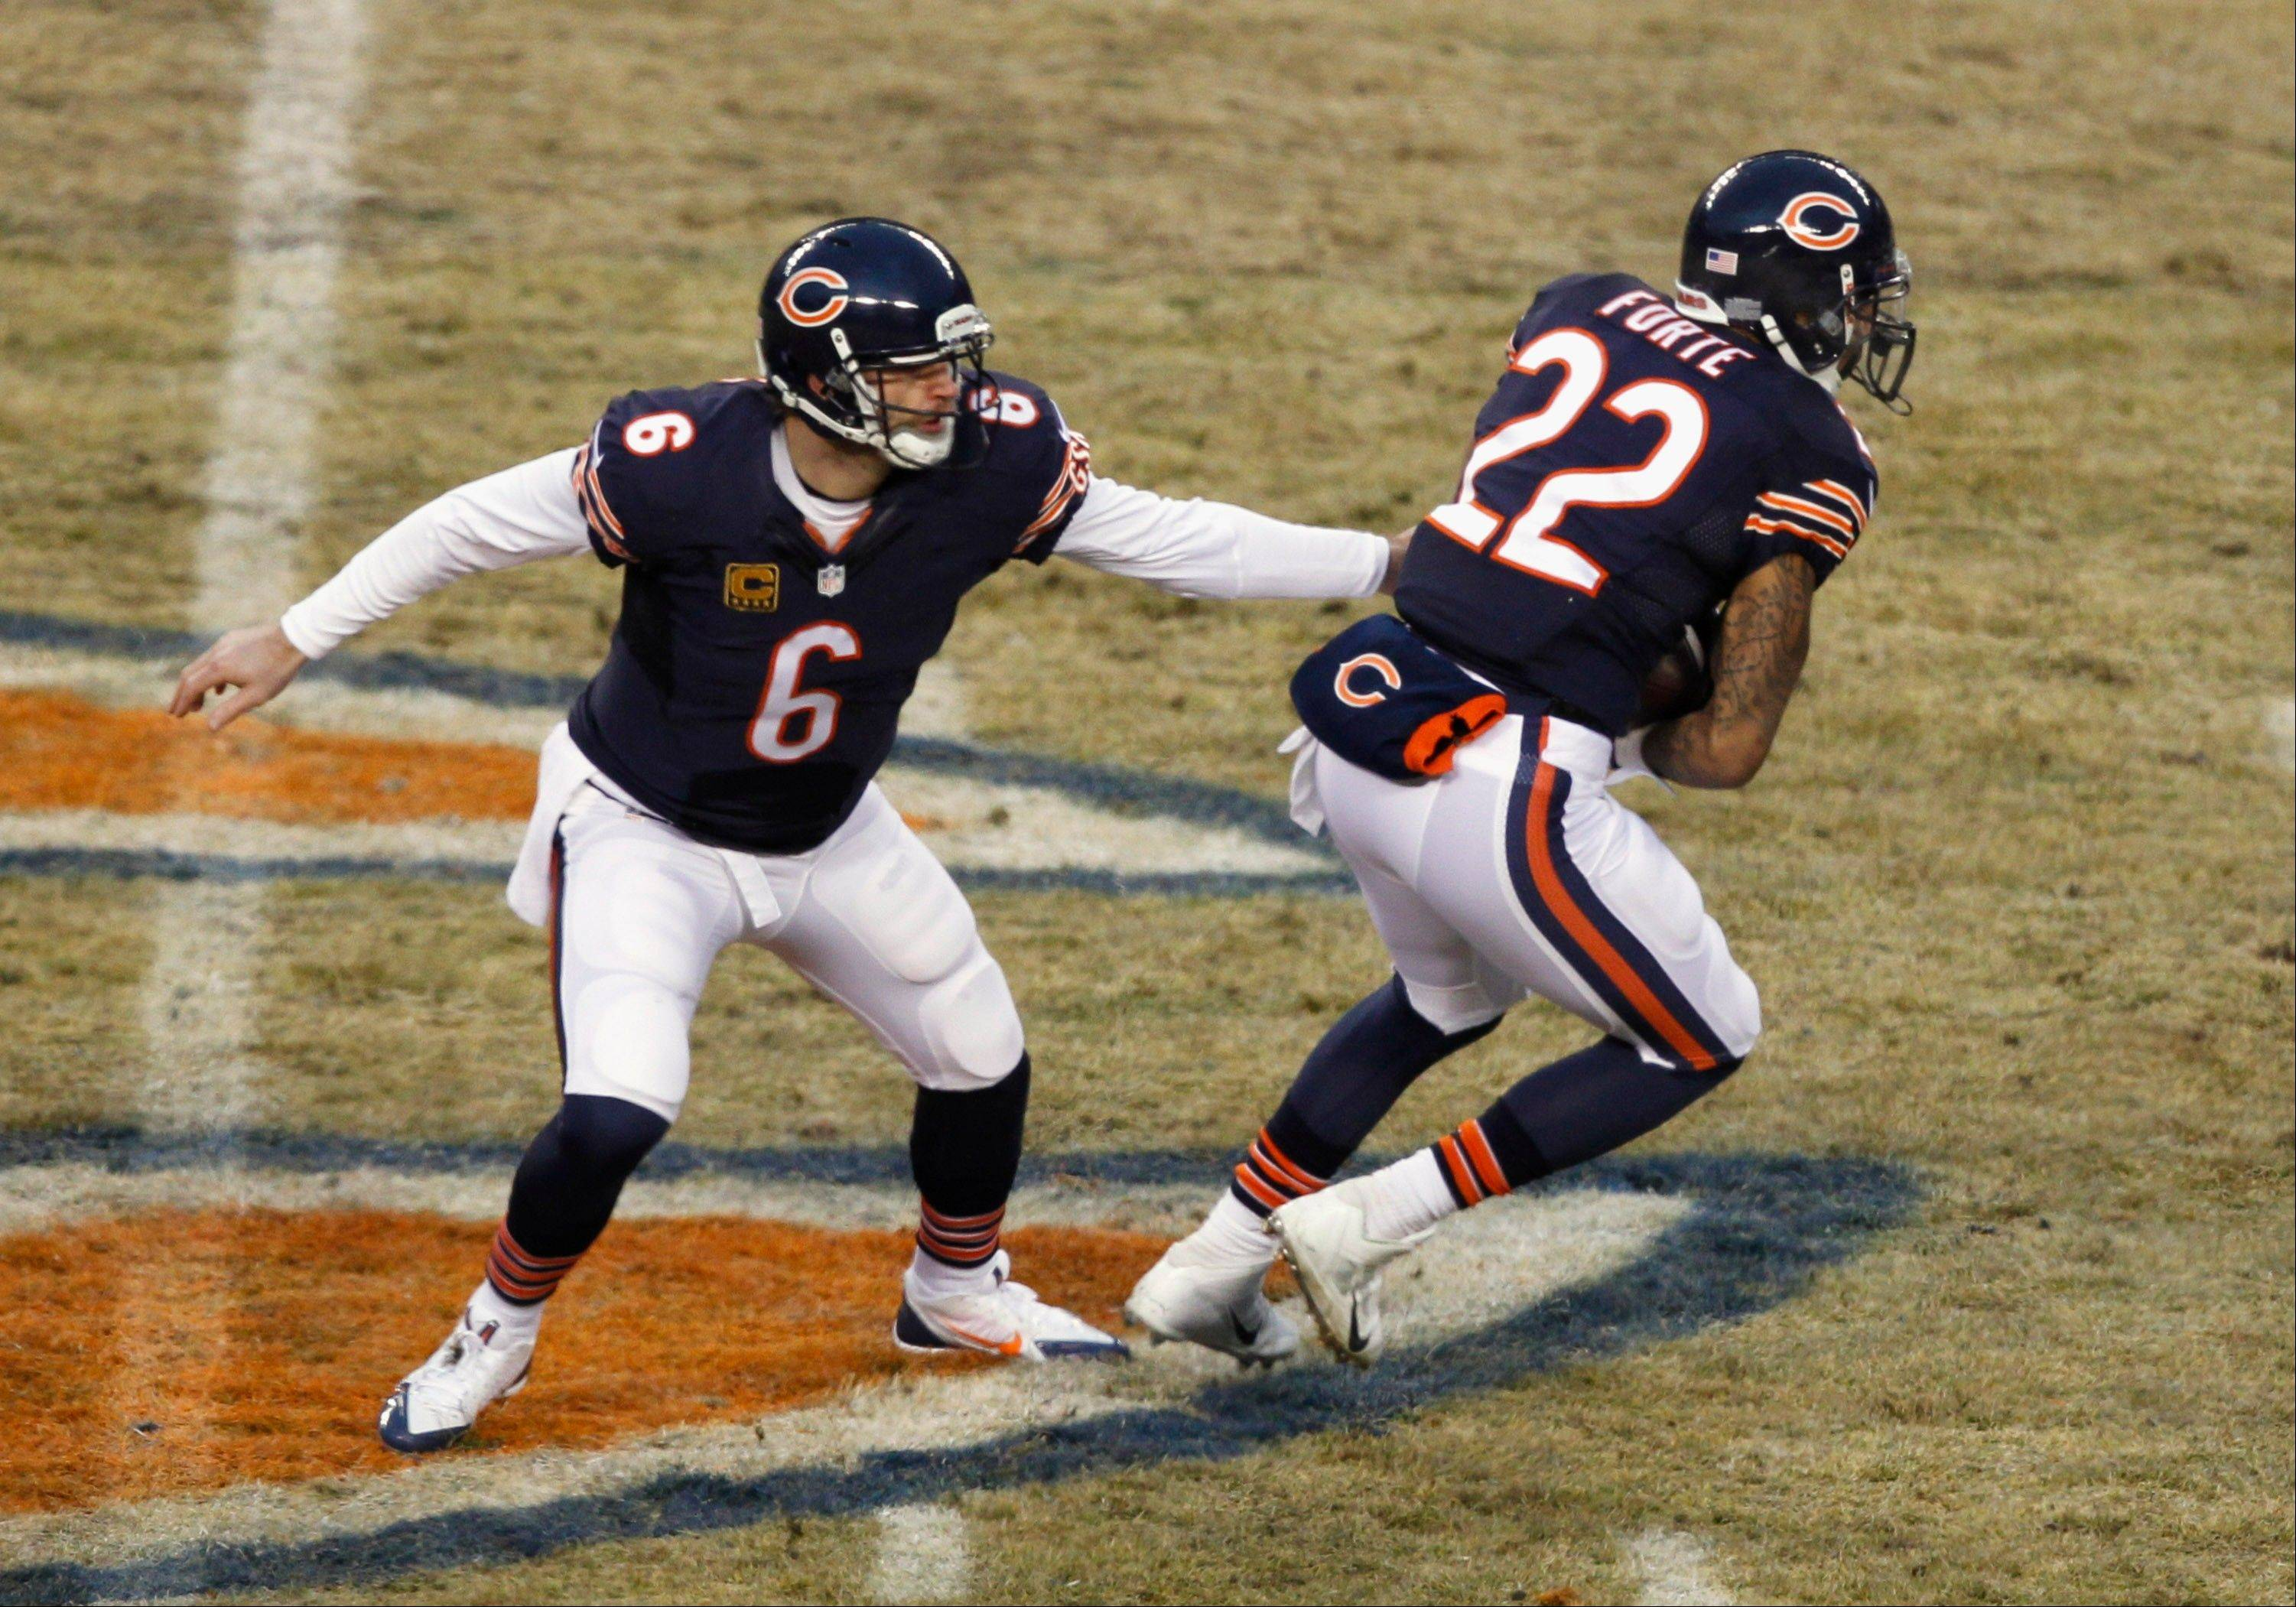 Shortest path to top for Bears includes Cutler